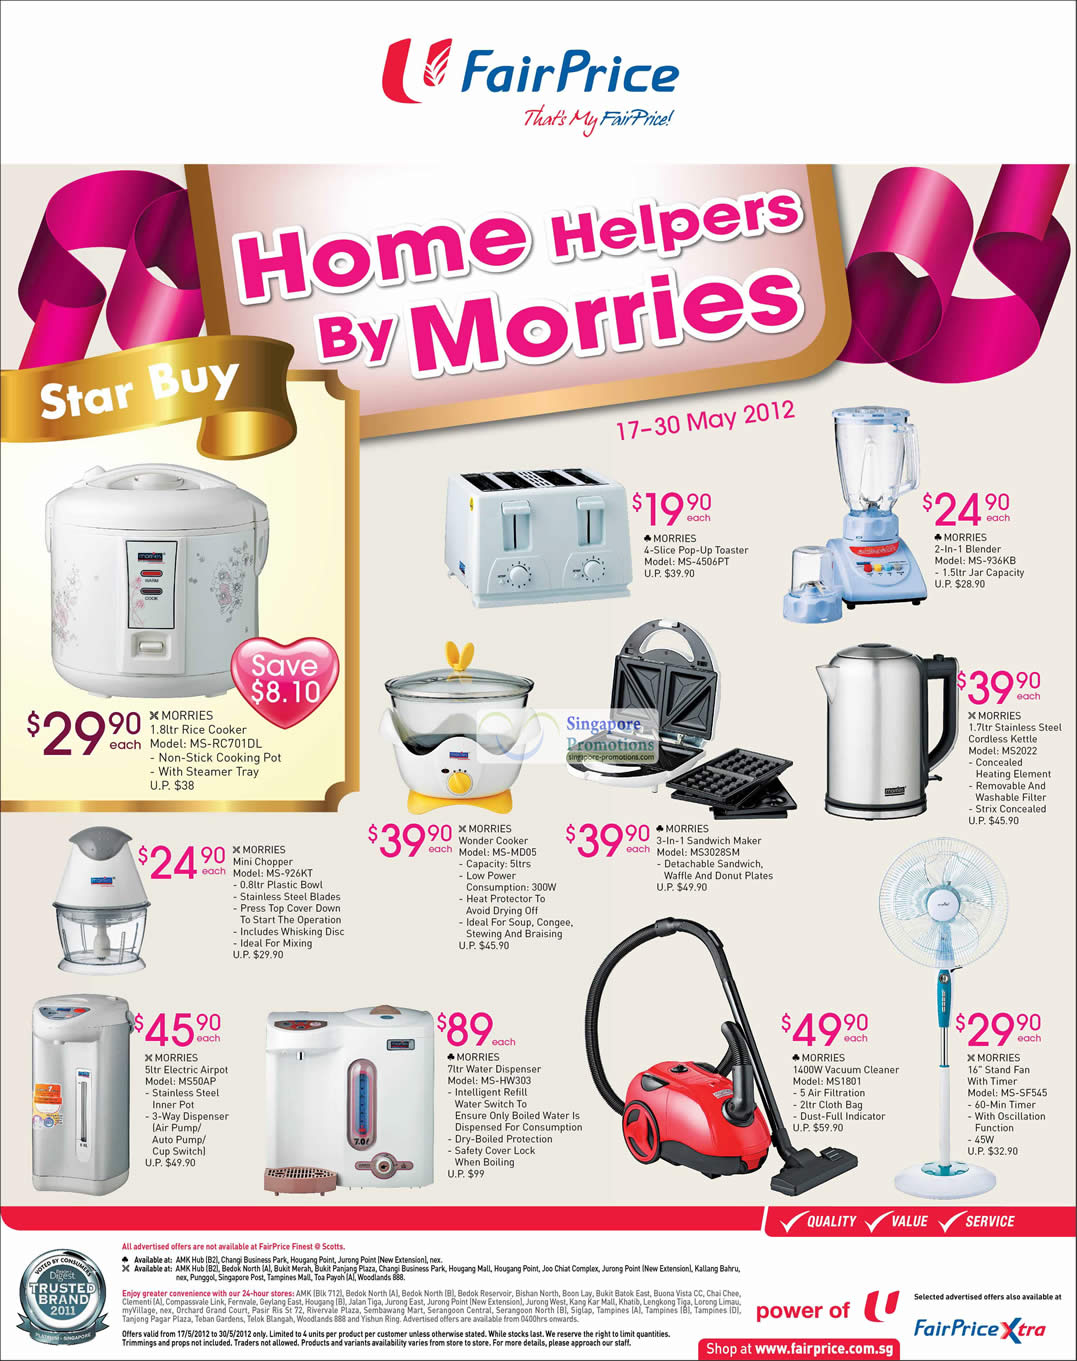 Morries, Vacuum Cleaner, Rice Cooker, Toaster, Airpot, Blender